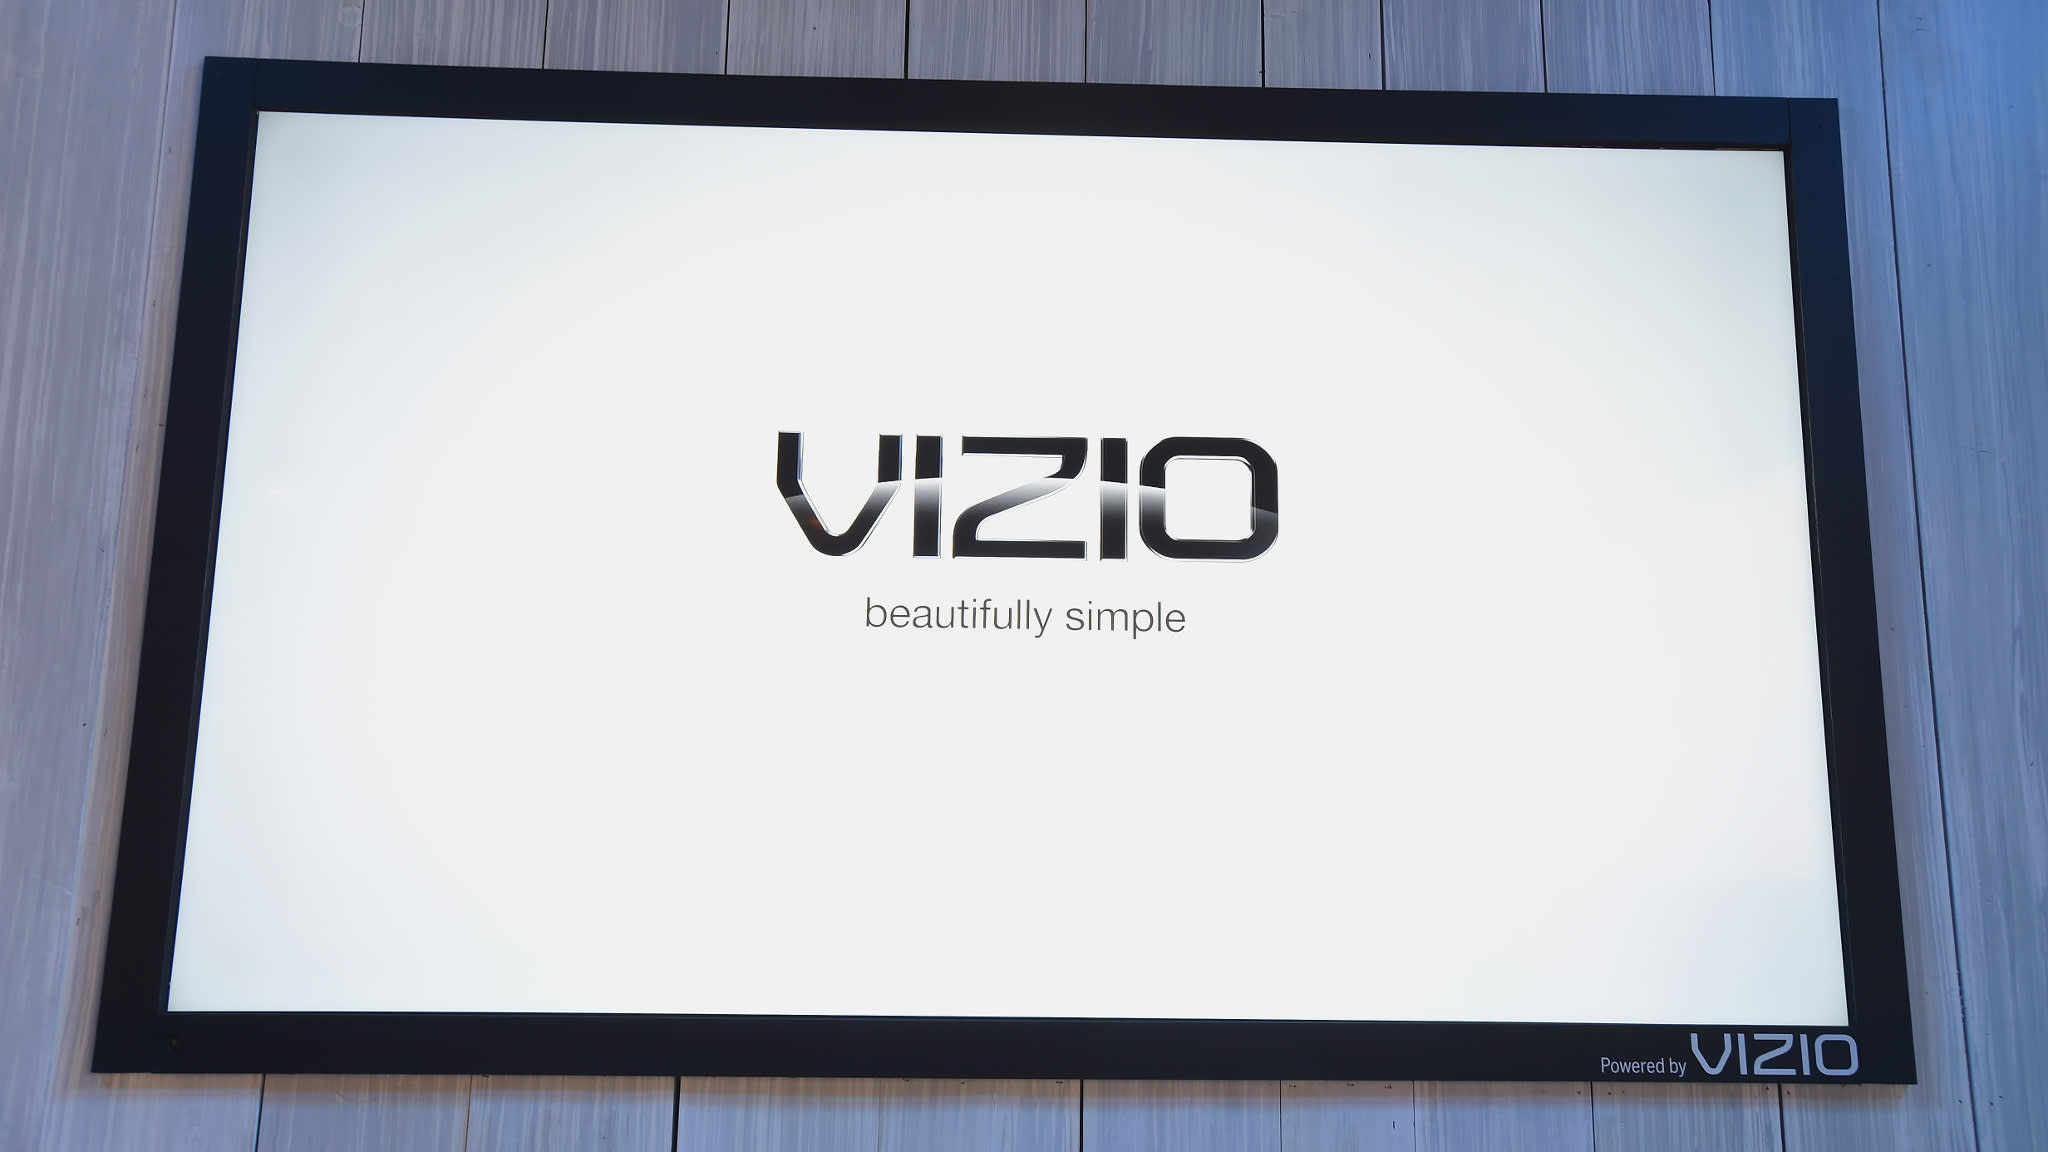 Innolux potentially gains steady U.S. demand for televisions through the Vizio deal as Foxconn prepares to build a manufacturing plant in Wisconsin.